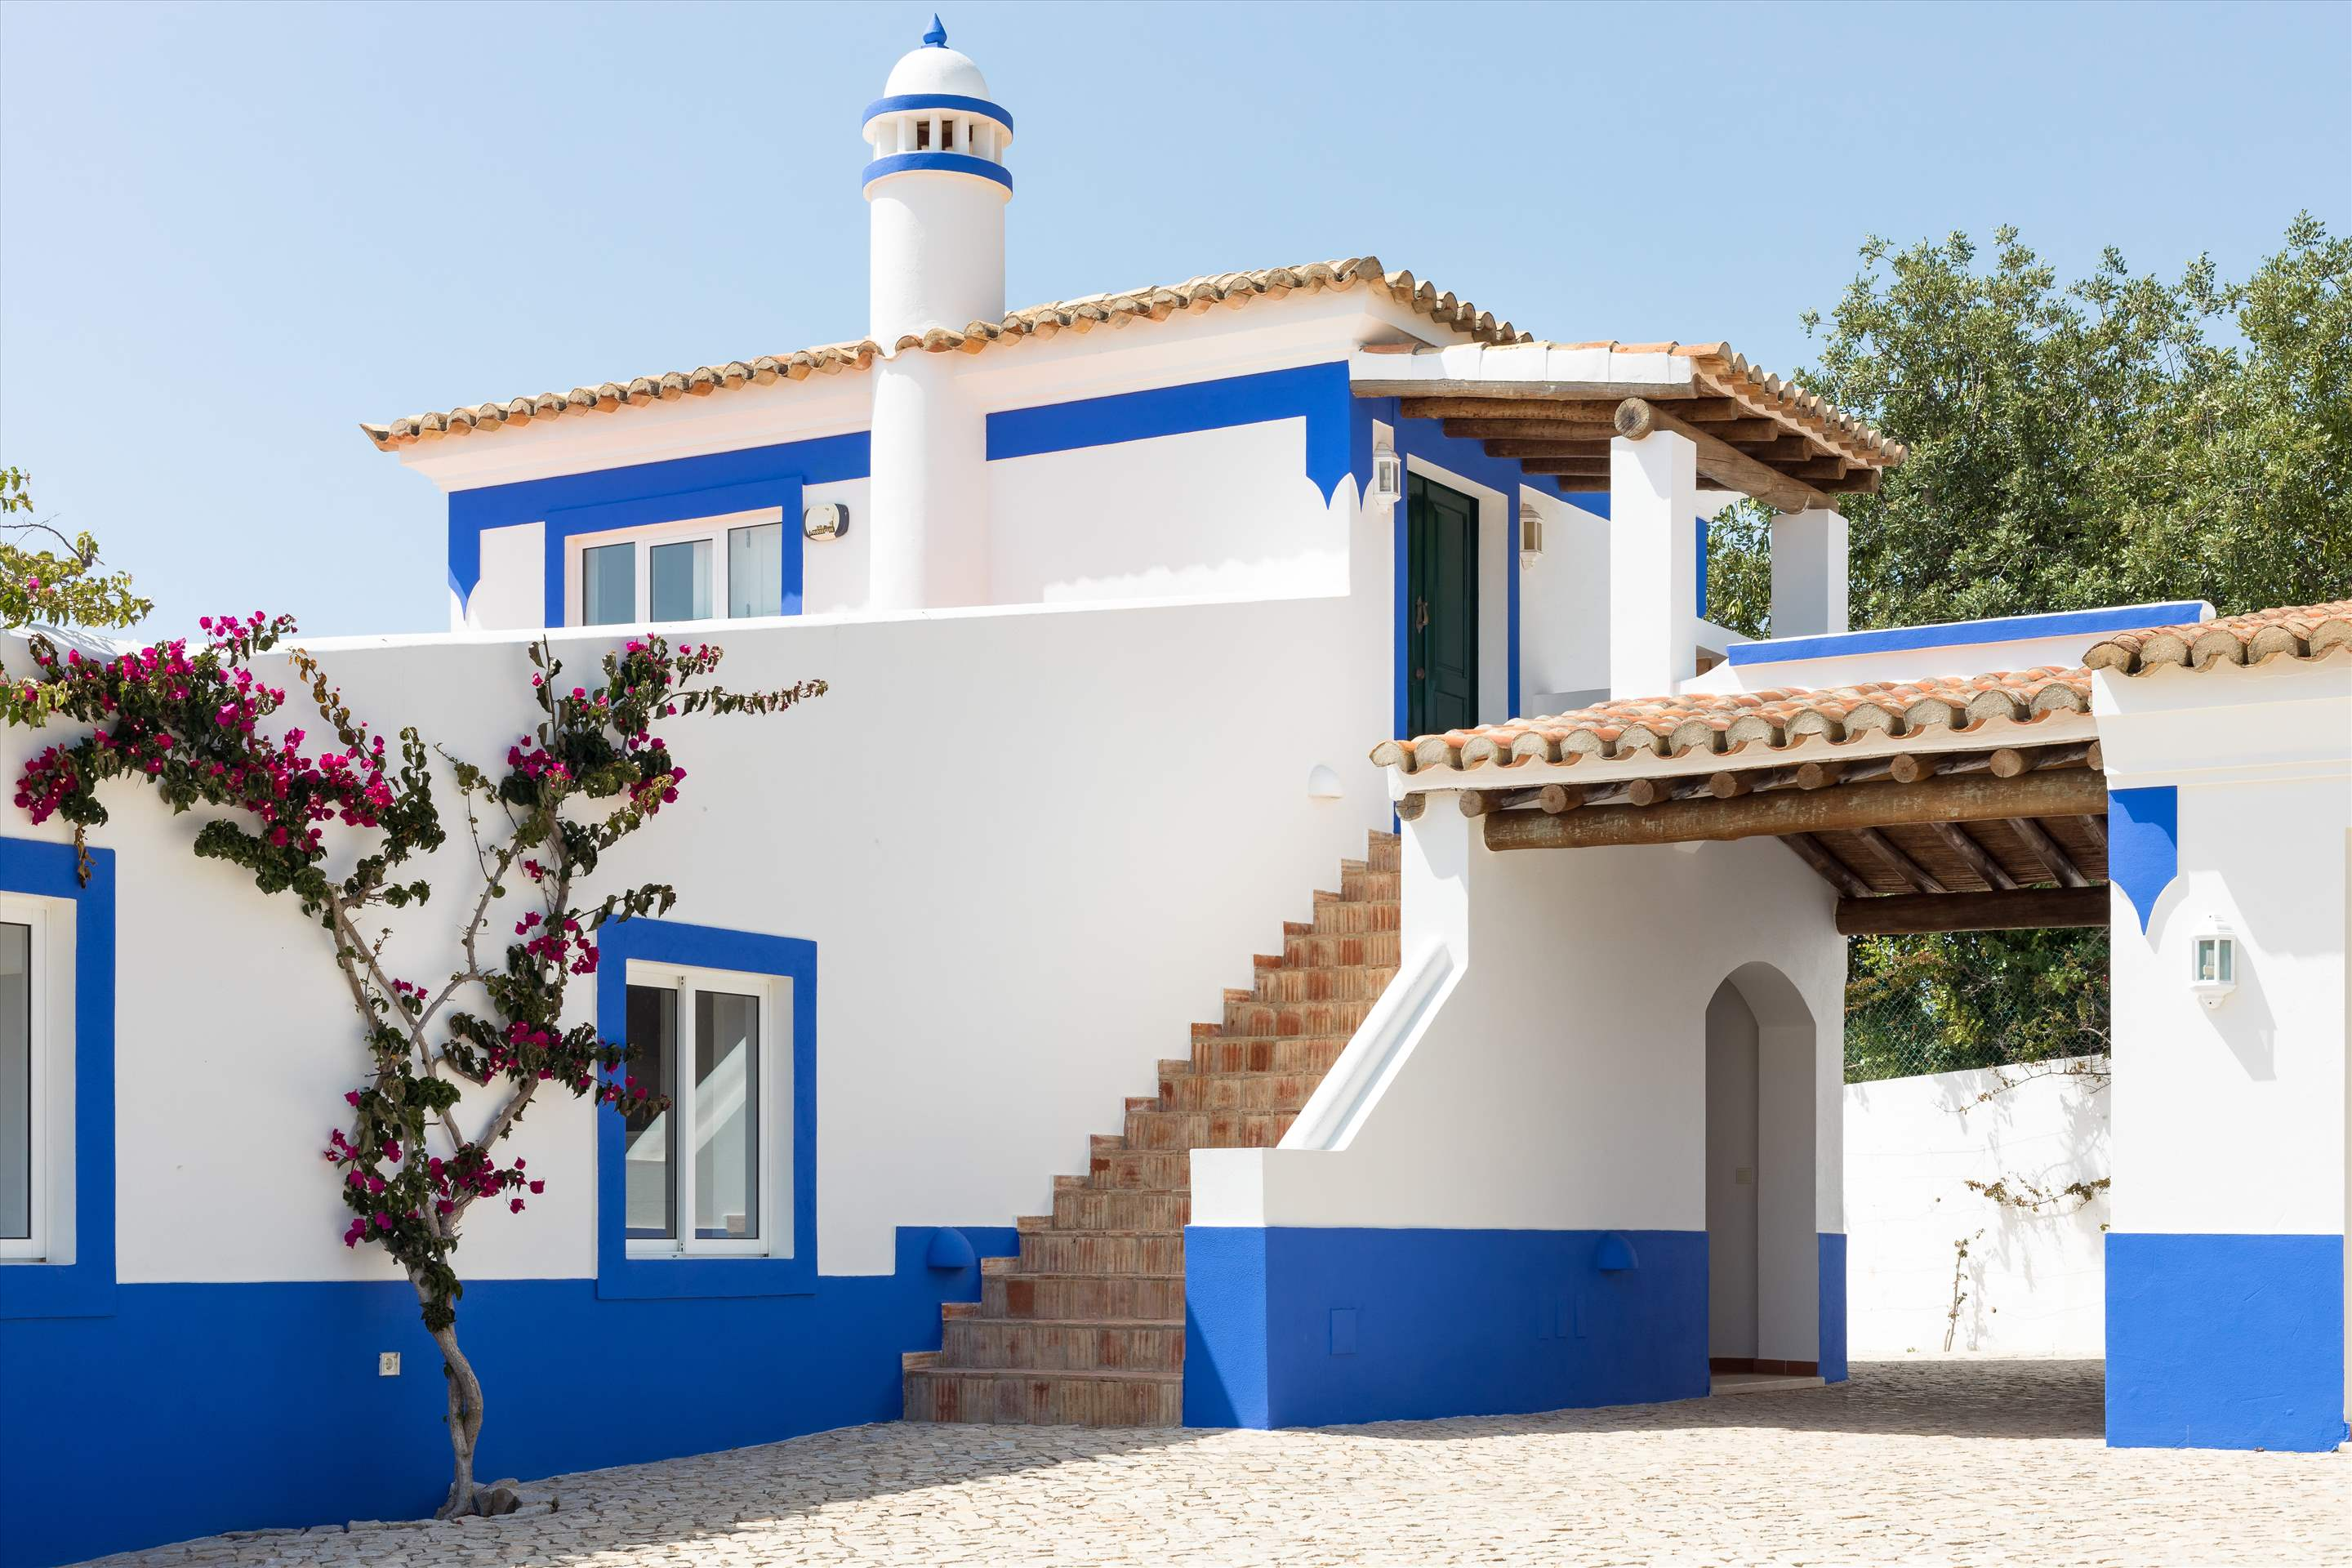 Casa da Montanha, 15-16 persons, 9 bedroom villa in Vilamoura Area, Algarve Photo #18